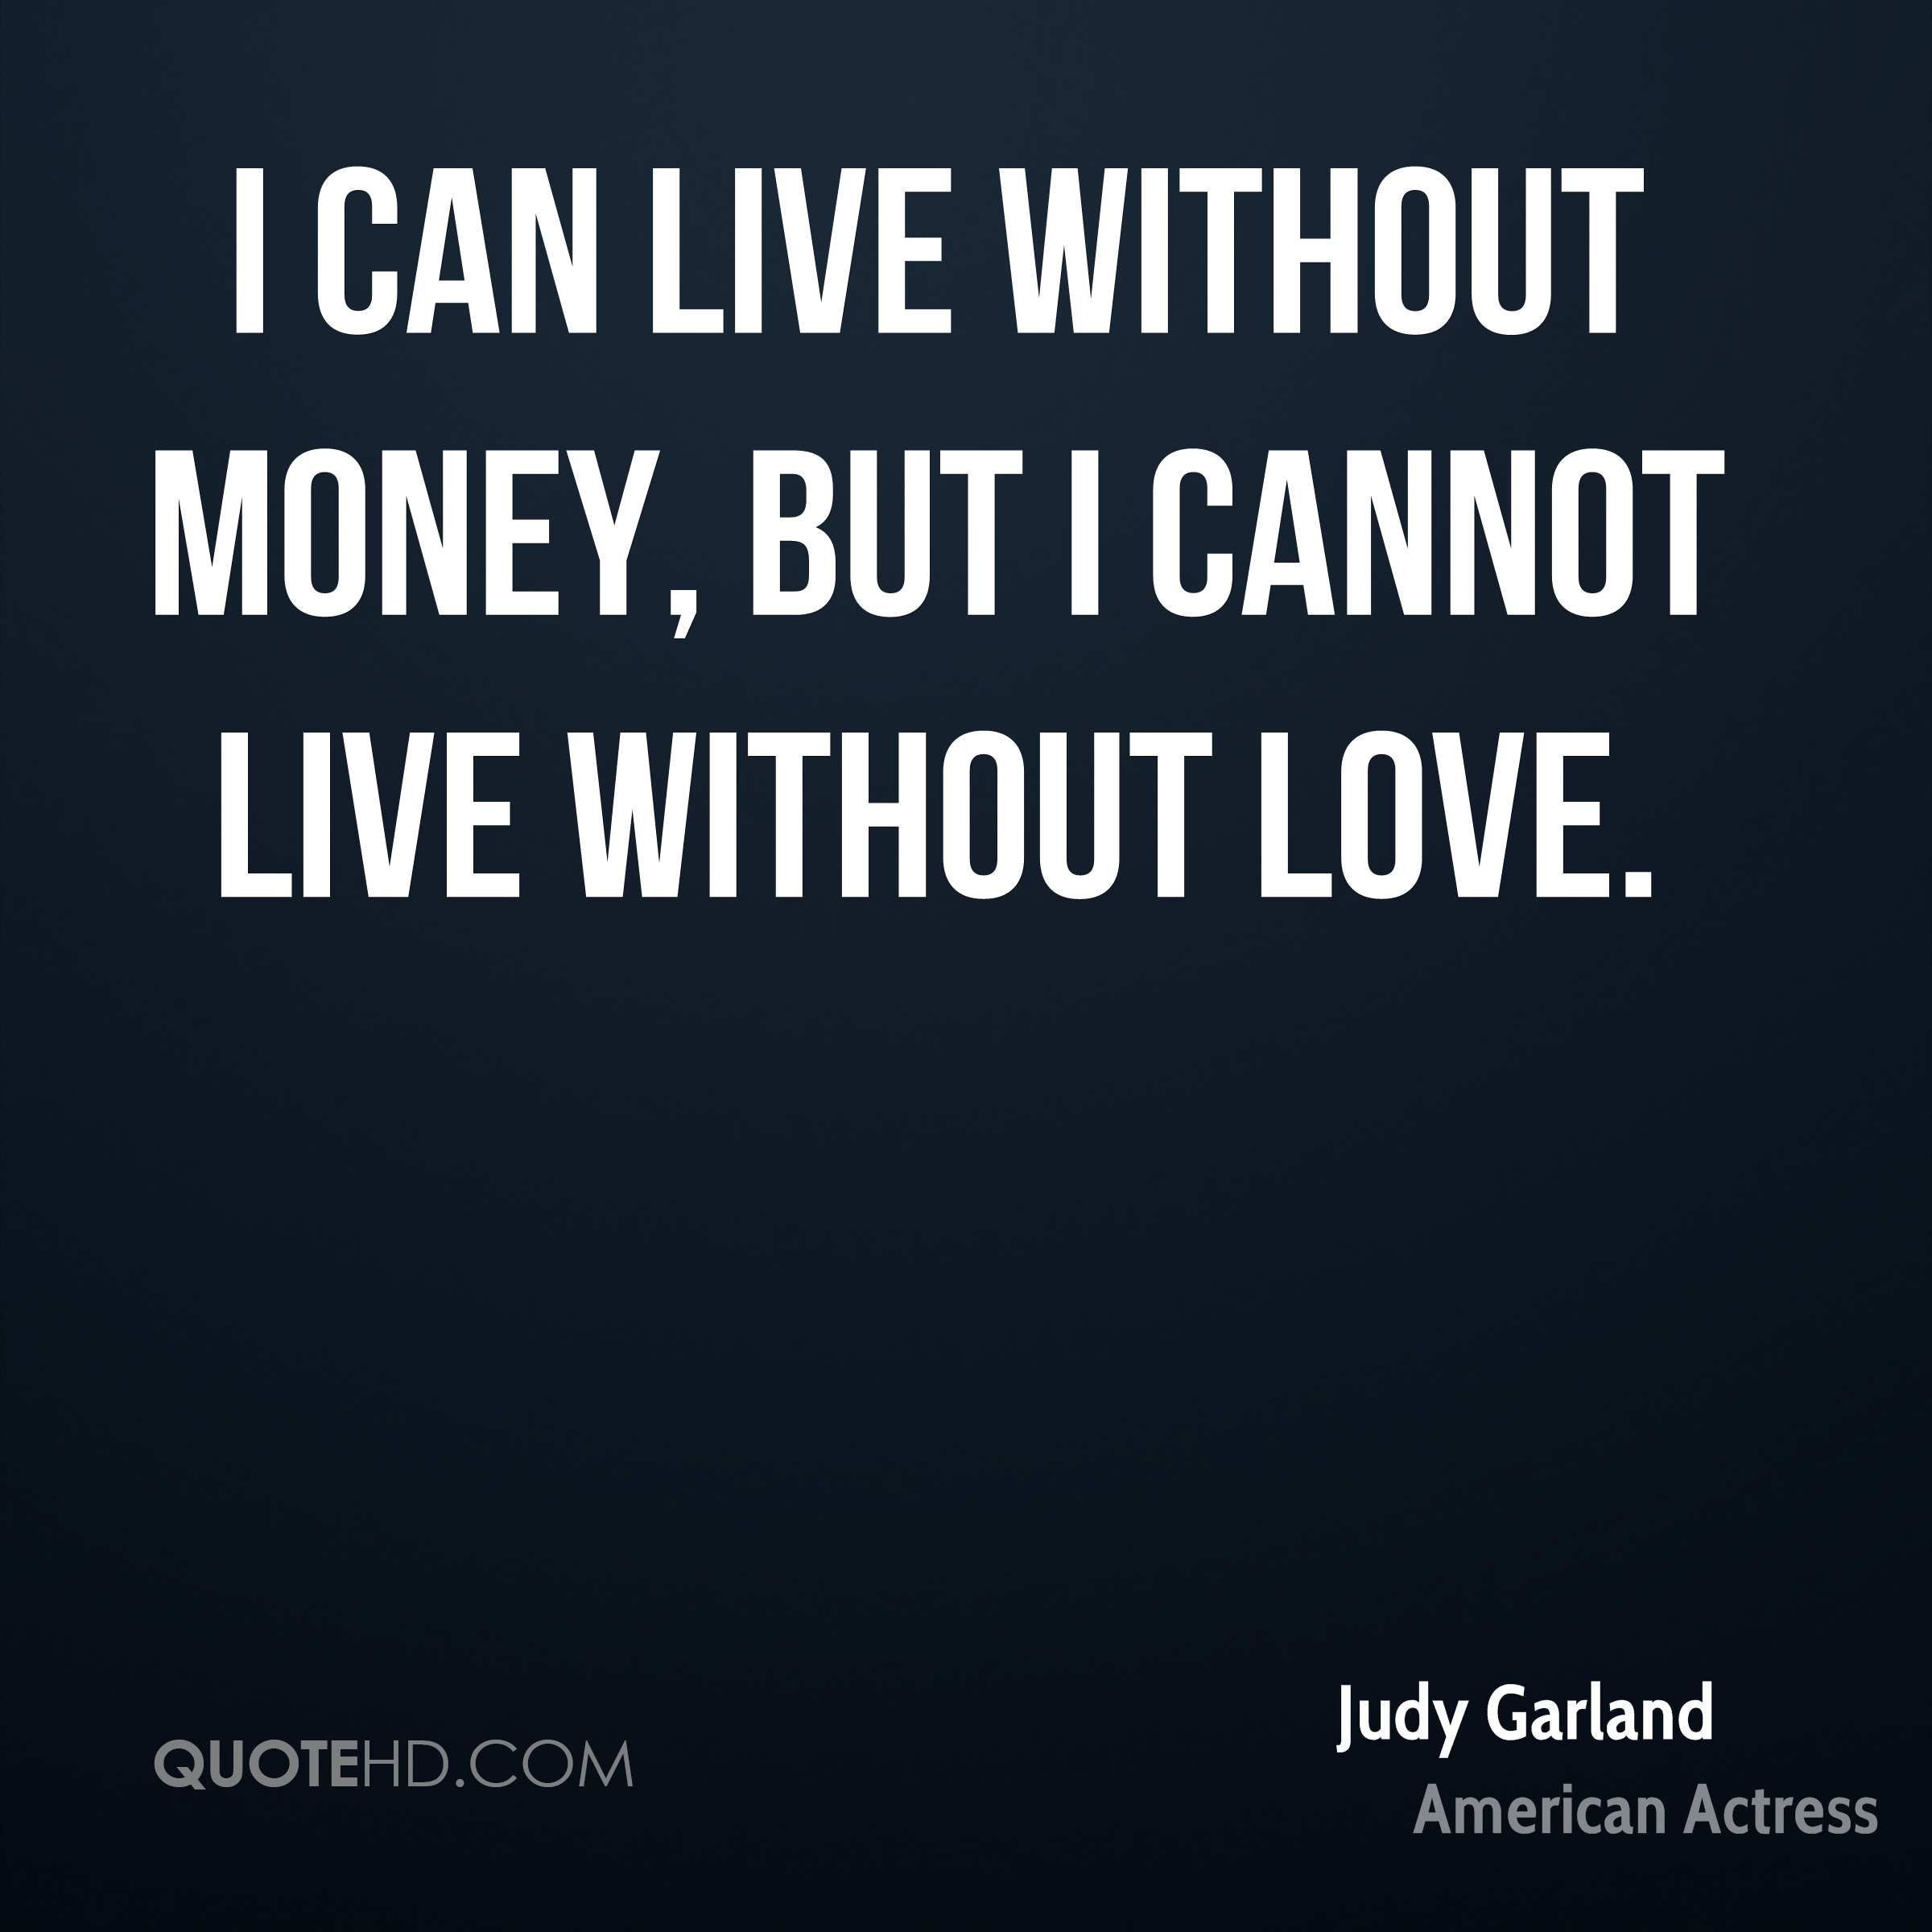 Quotes About Life Without Love: Judy Garland Money Quotes